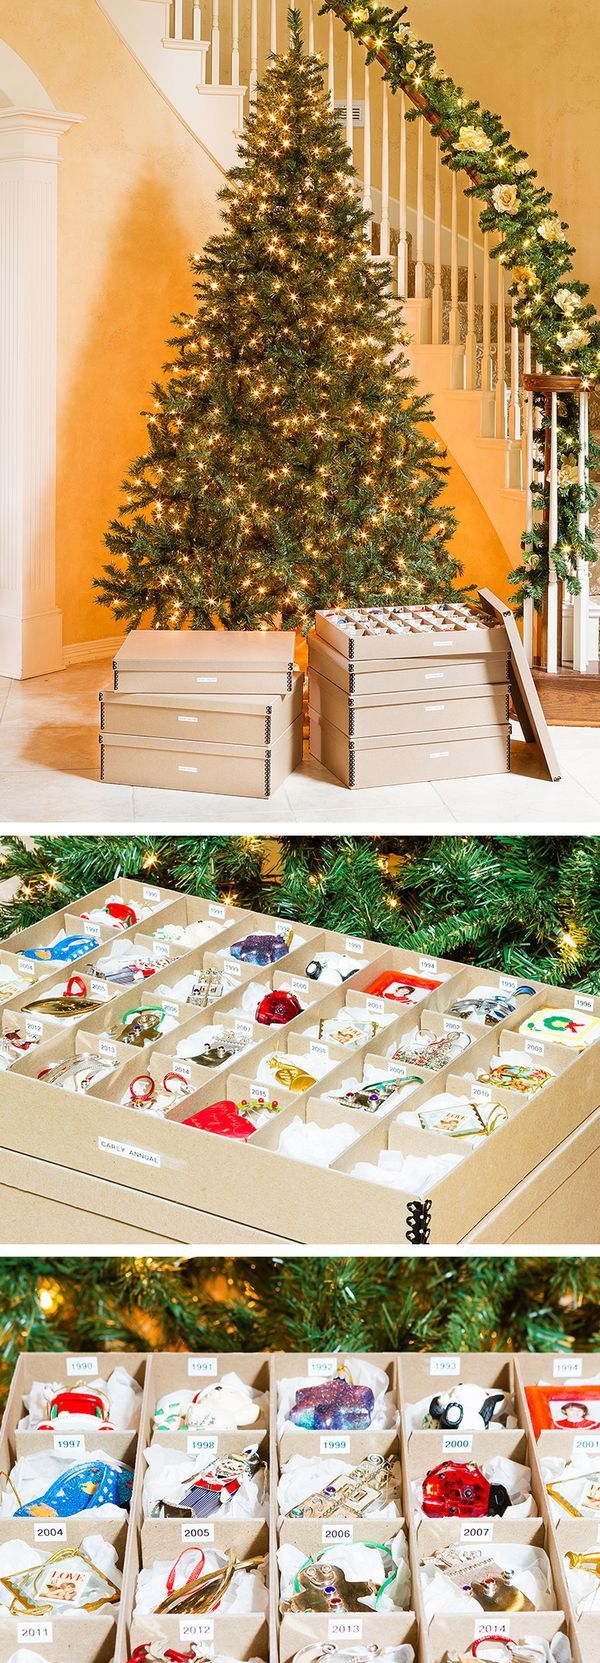 A sweet ornament tradition receives a storage upgrade.